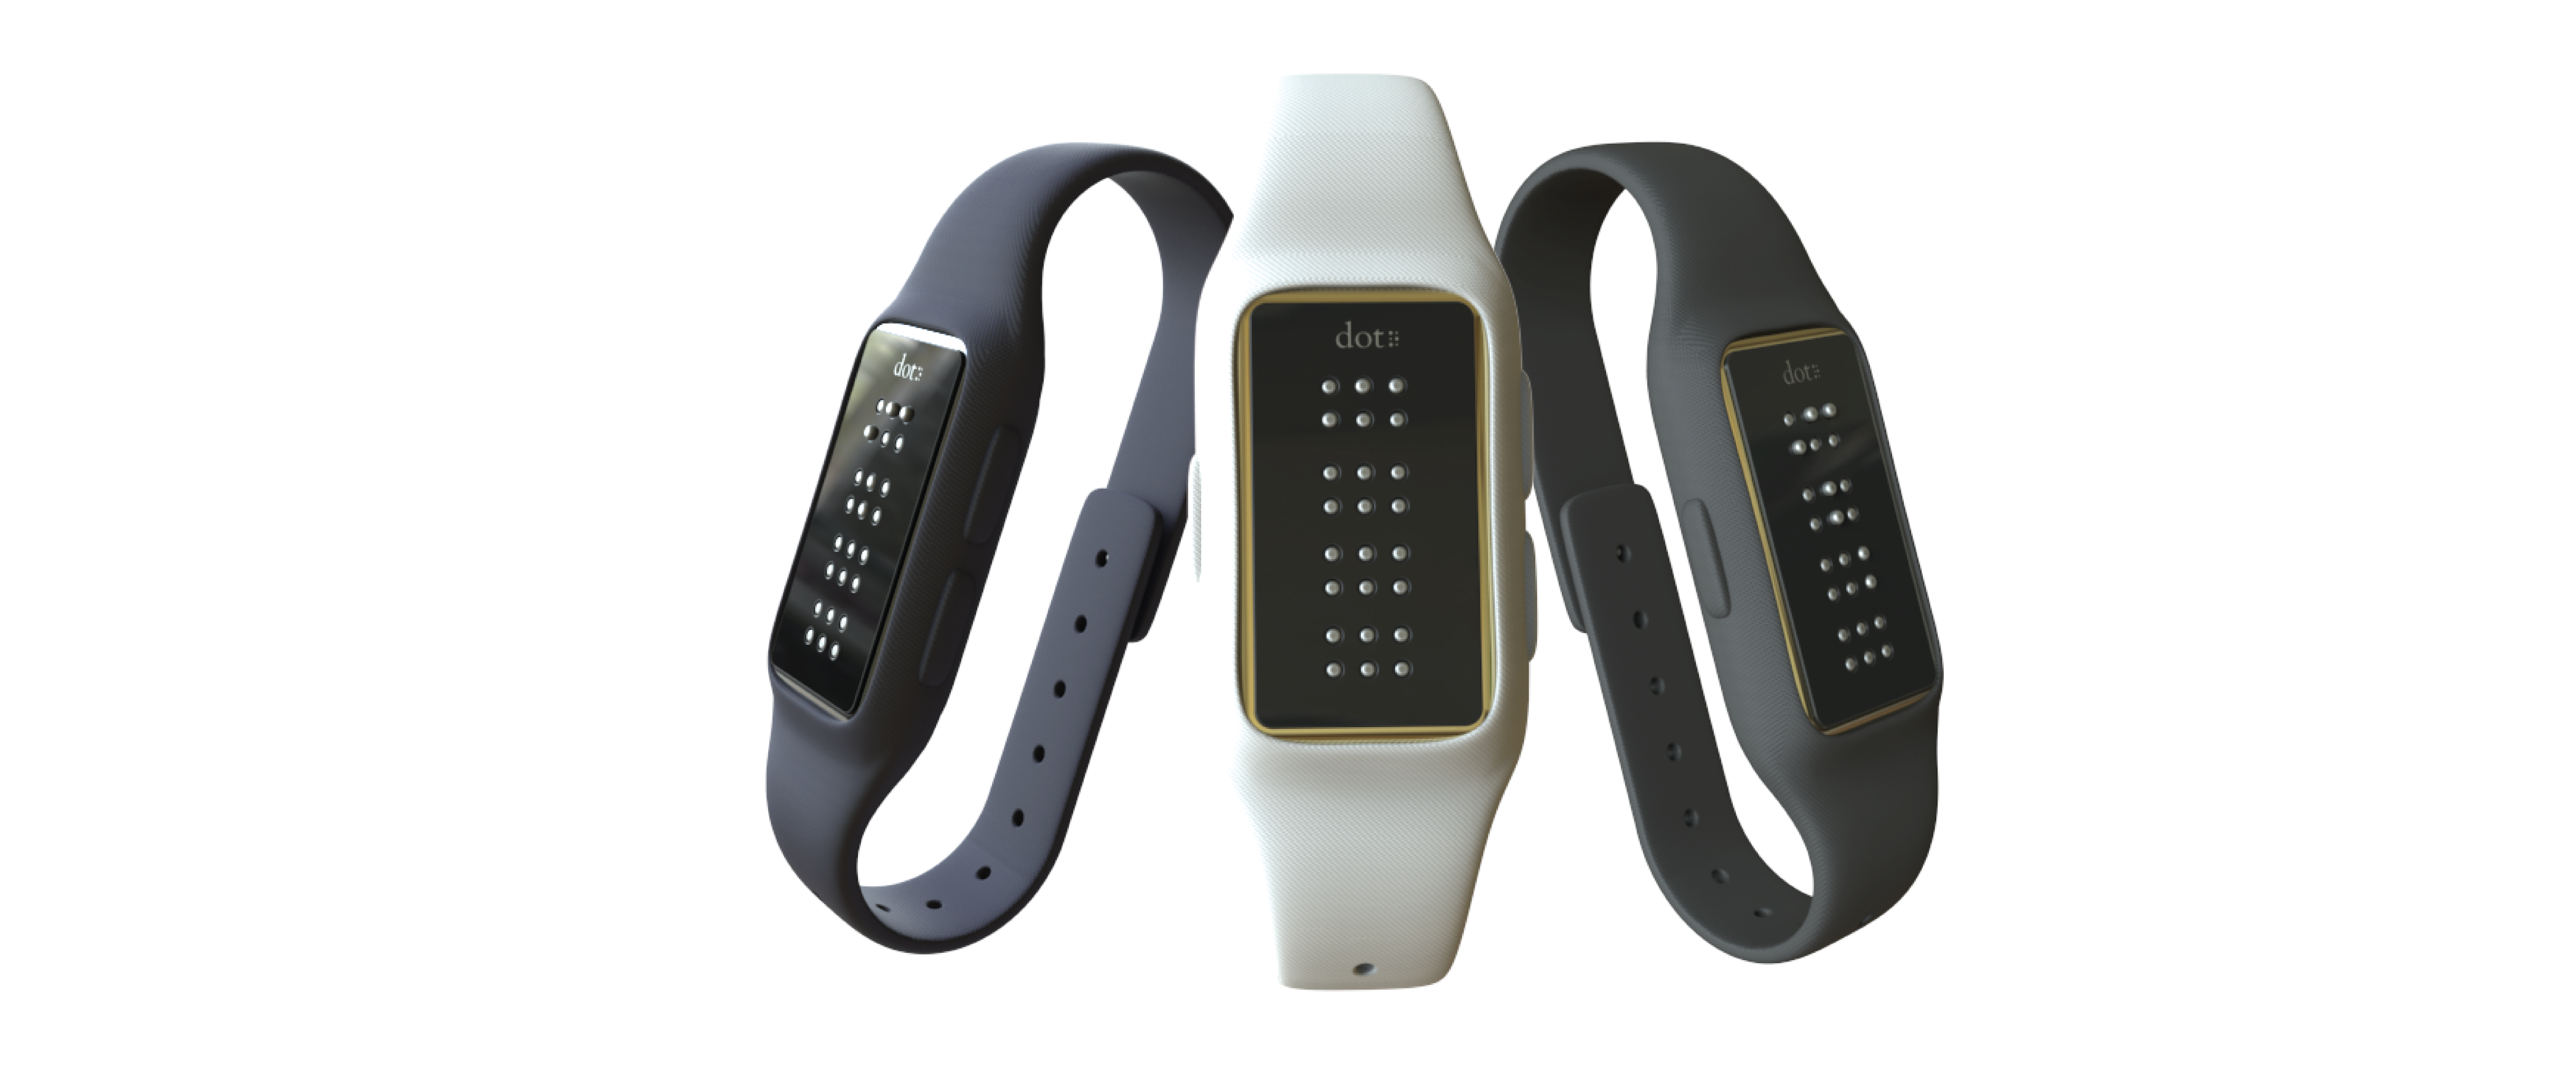 Wearable devices the future of technology